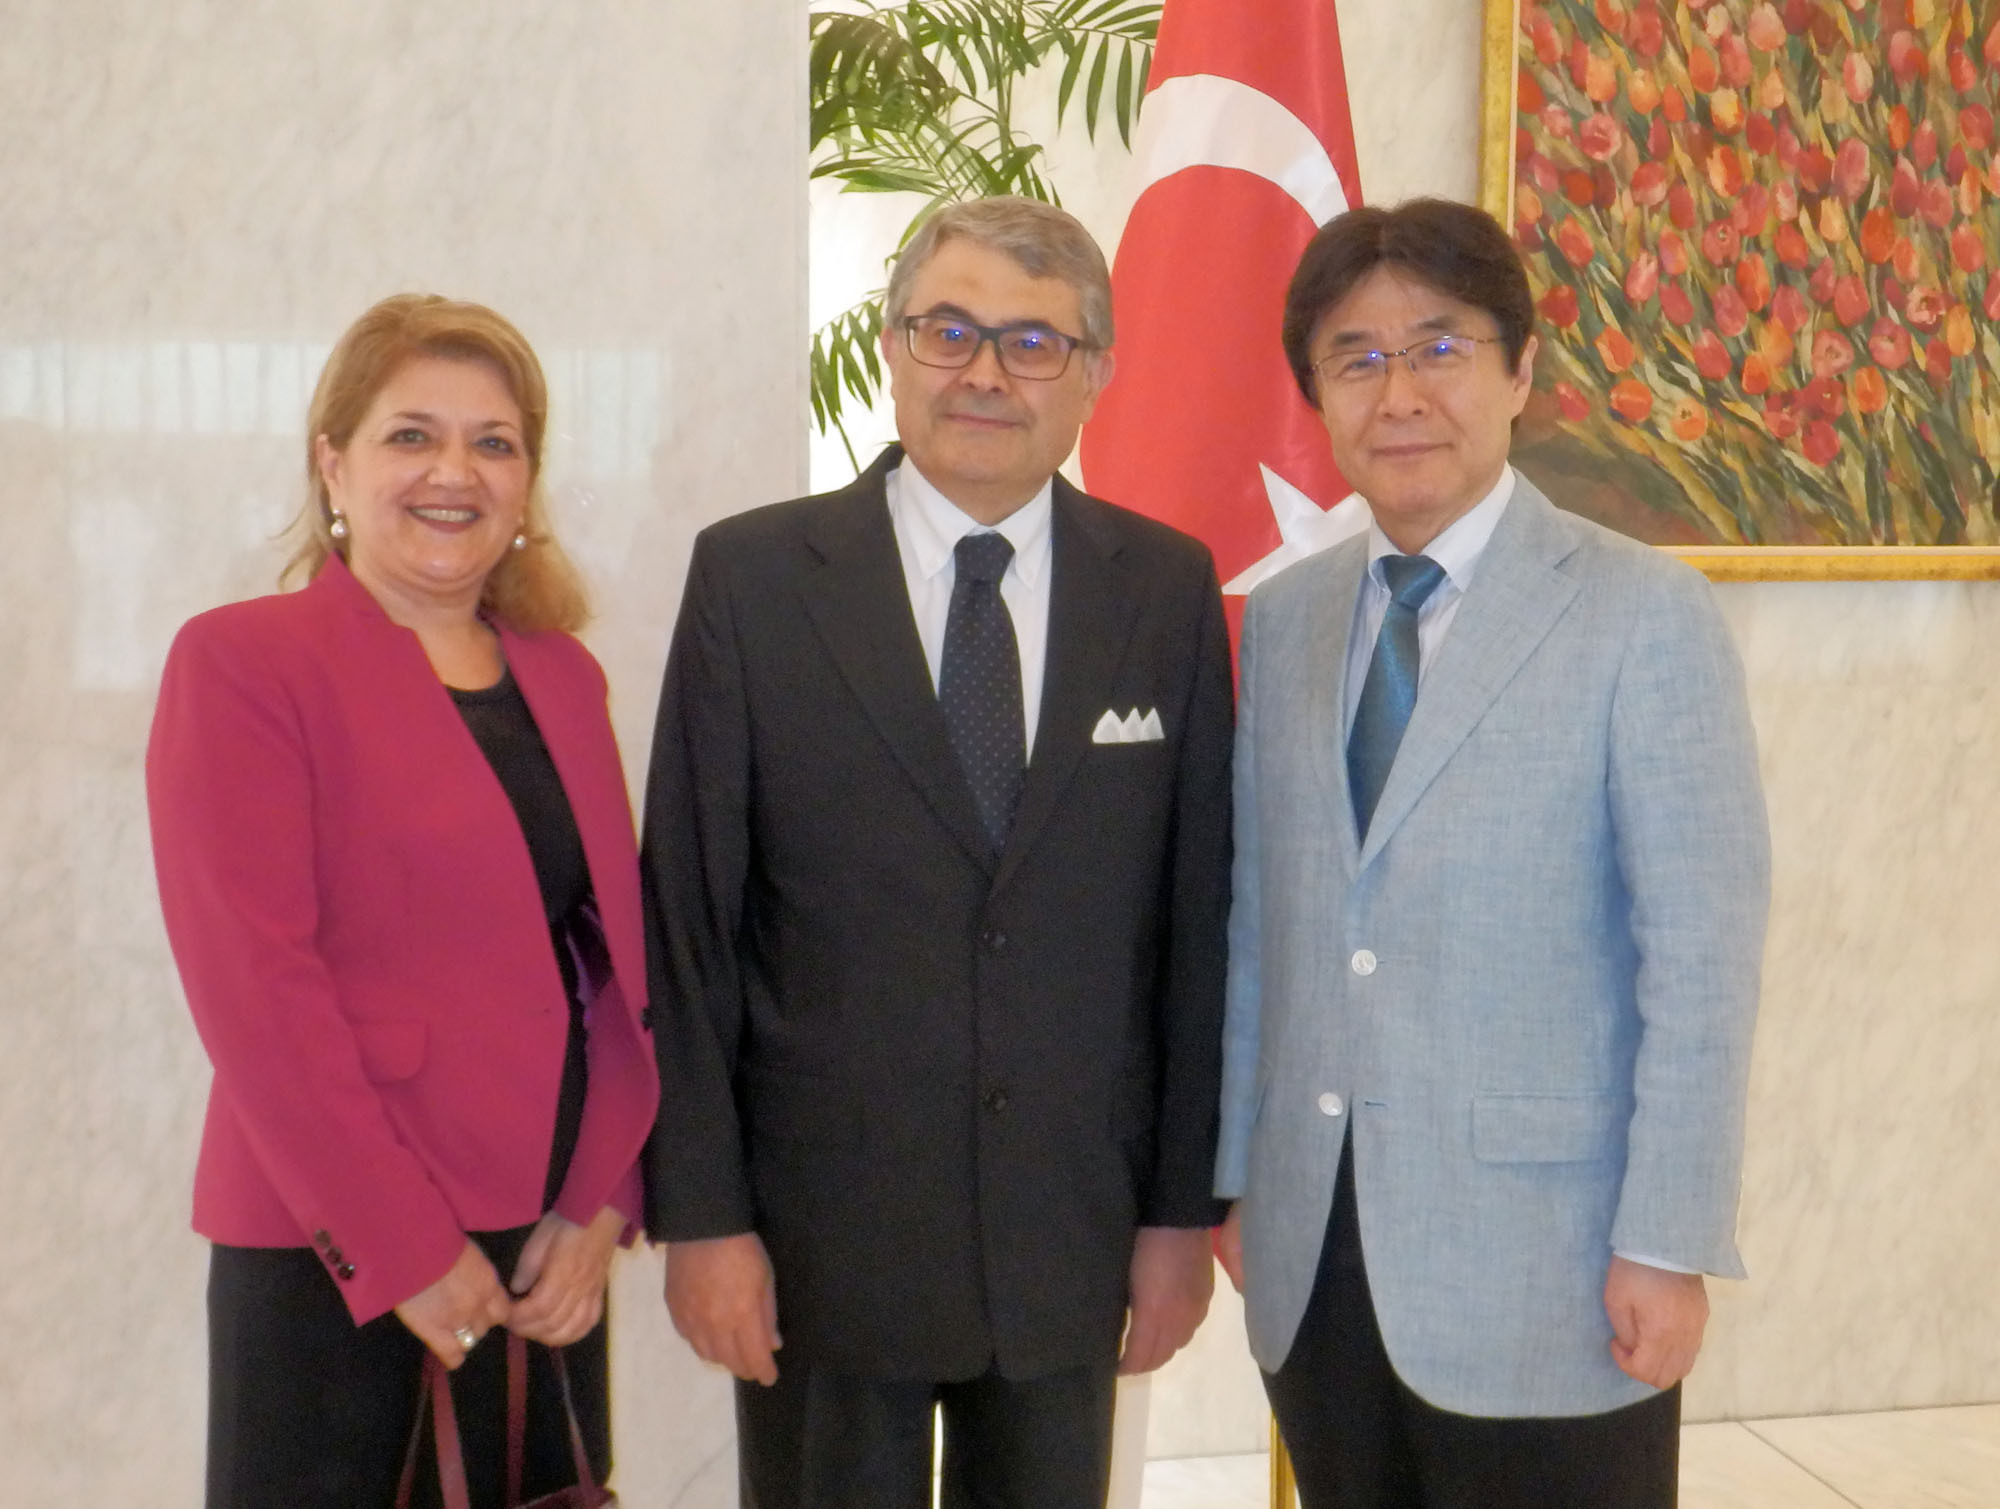 Turkey's Ambassador Ahmet Bulent Meric (center) poses with Elif Agafur (left), chef-owner of Izmir restaurant, and Kazuyuki Hamada (right), former parliamentary vice-minister for foreign affairs, during a Victory Day reception at the ambassador's residence in Tokyo on Sept. 15. | TAKUTO MINAMI